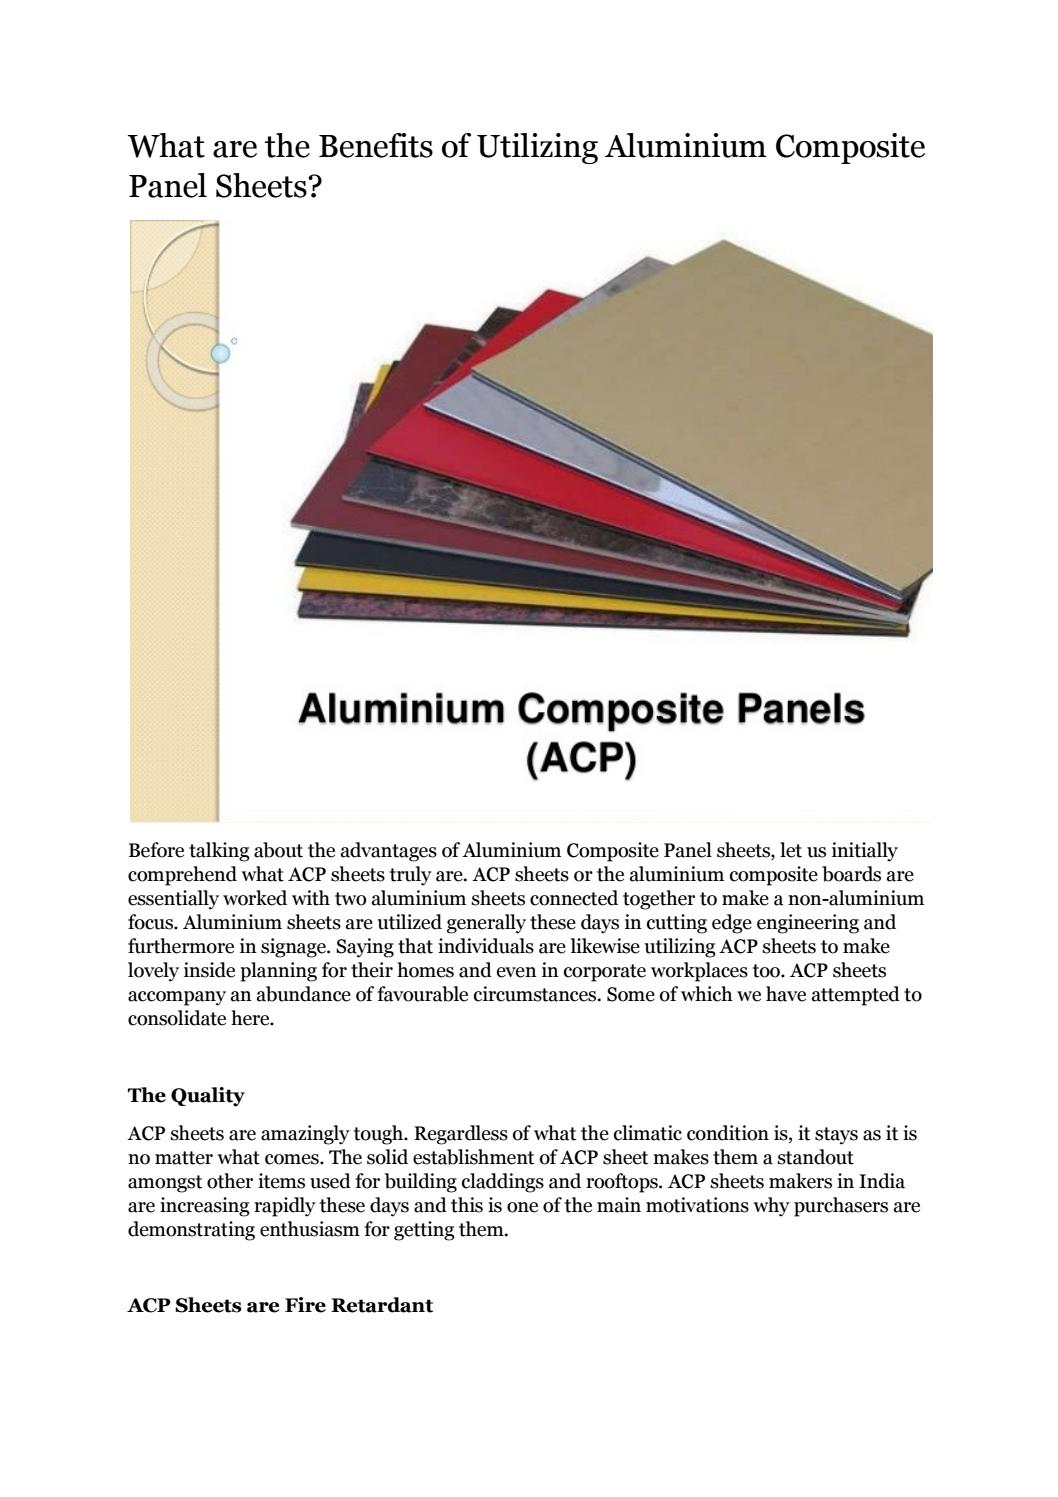 What are the Benefits of Utilizing Aluminium Composite Panel Sheets?